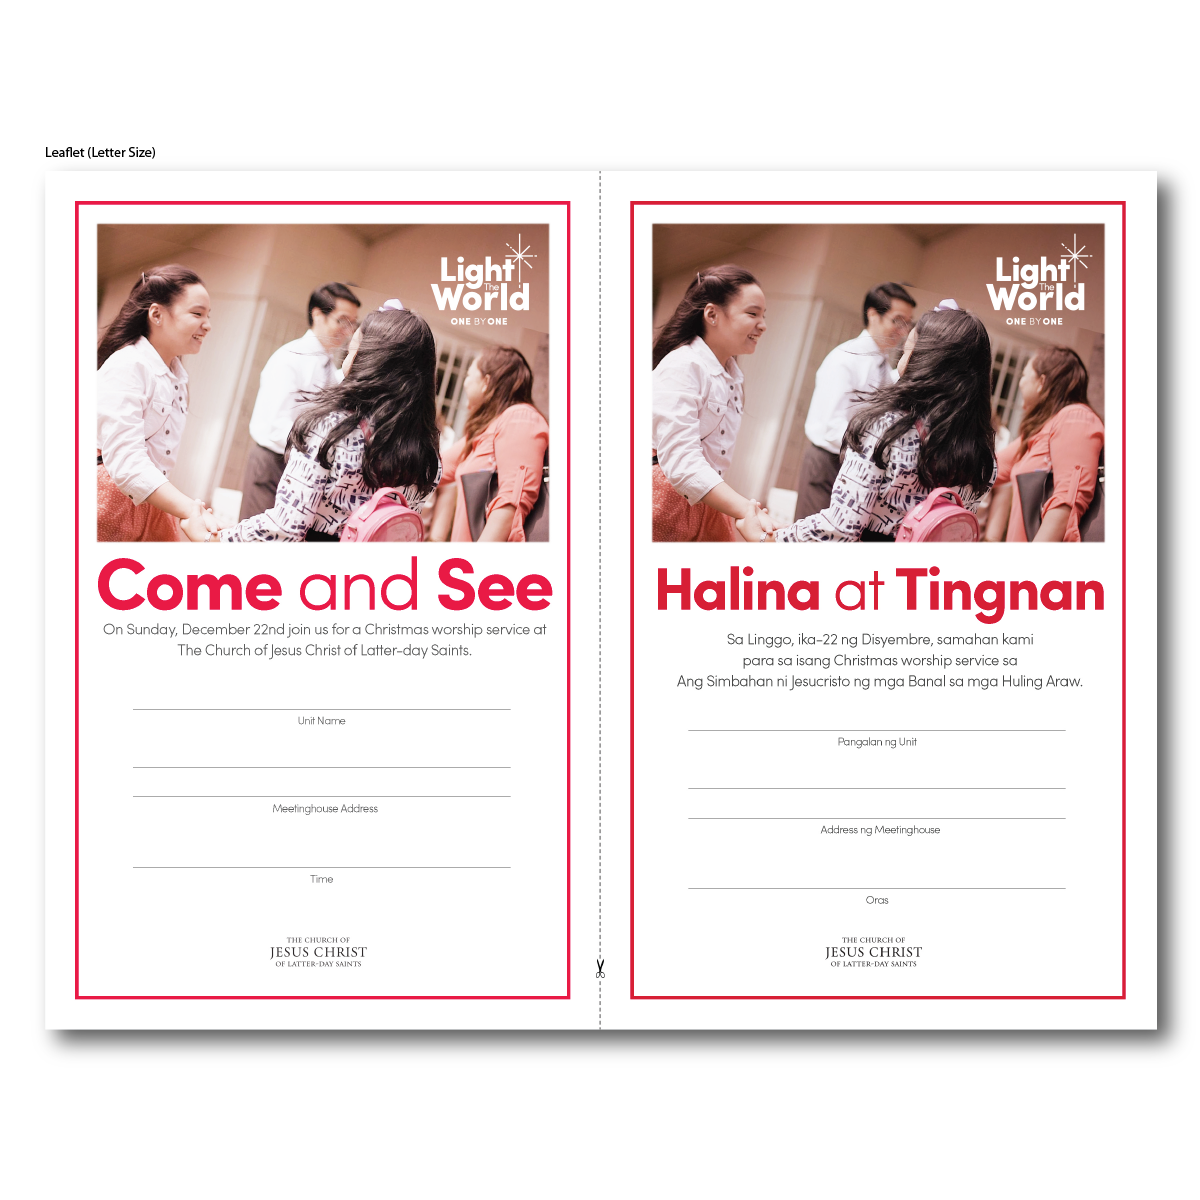 Leaflet for Come and See